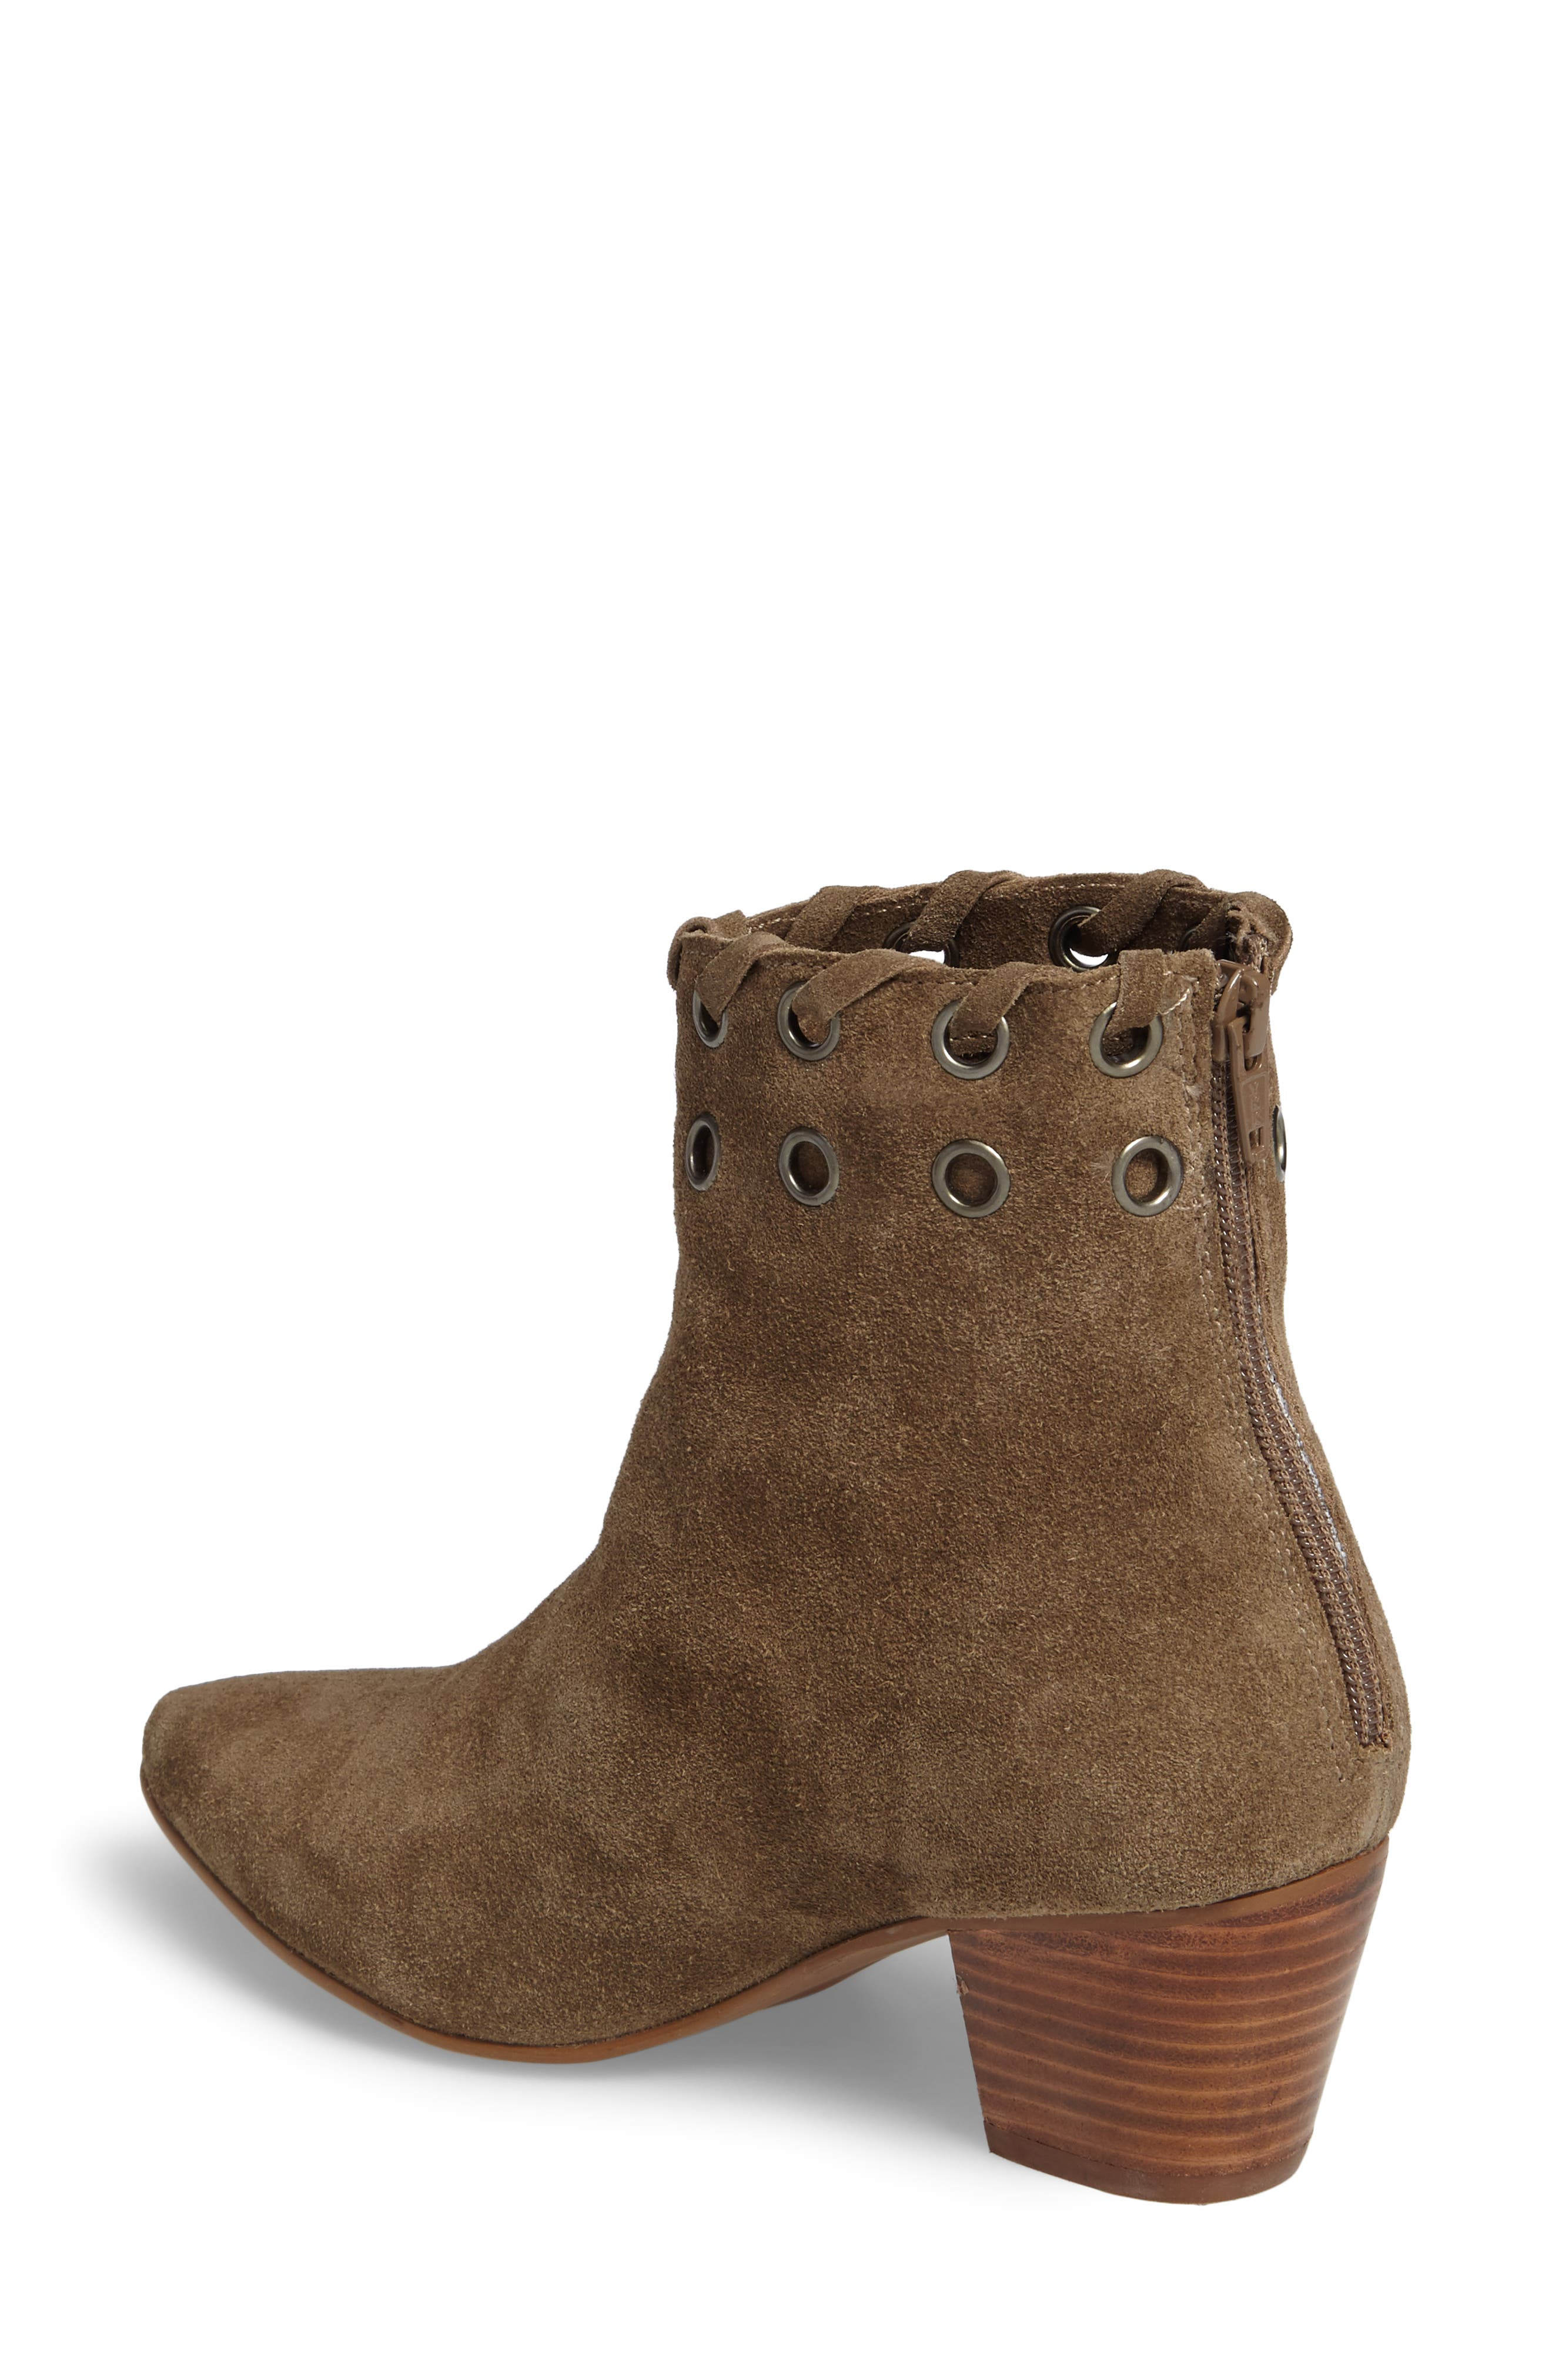 Wildcat Bootie,                             Alternate thumbnail 2, color,                             Taupe Suede